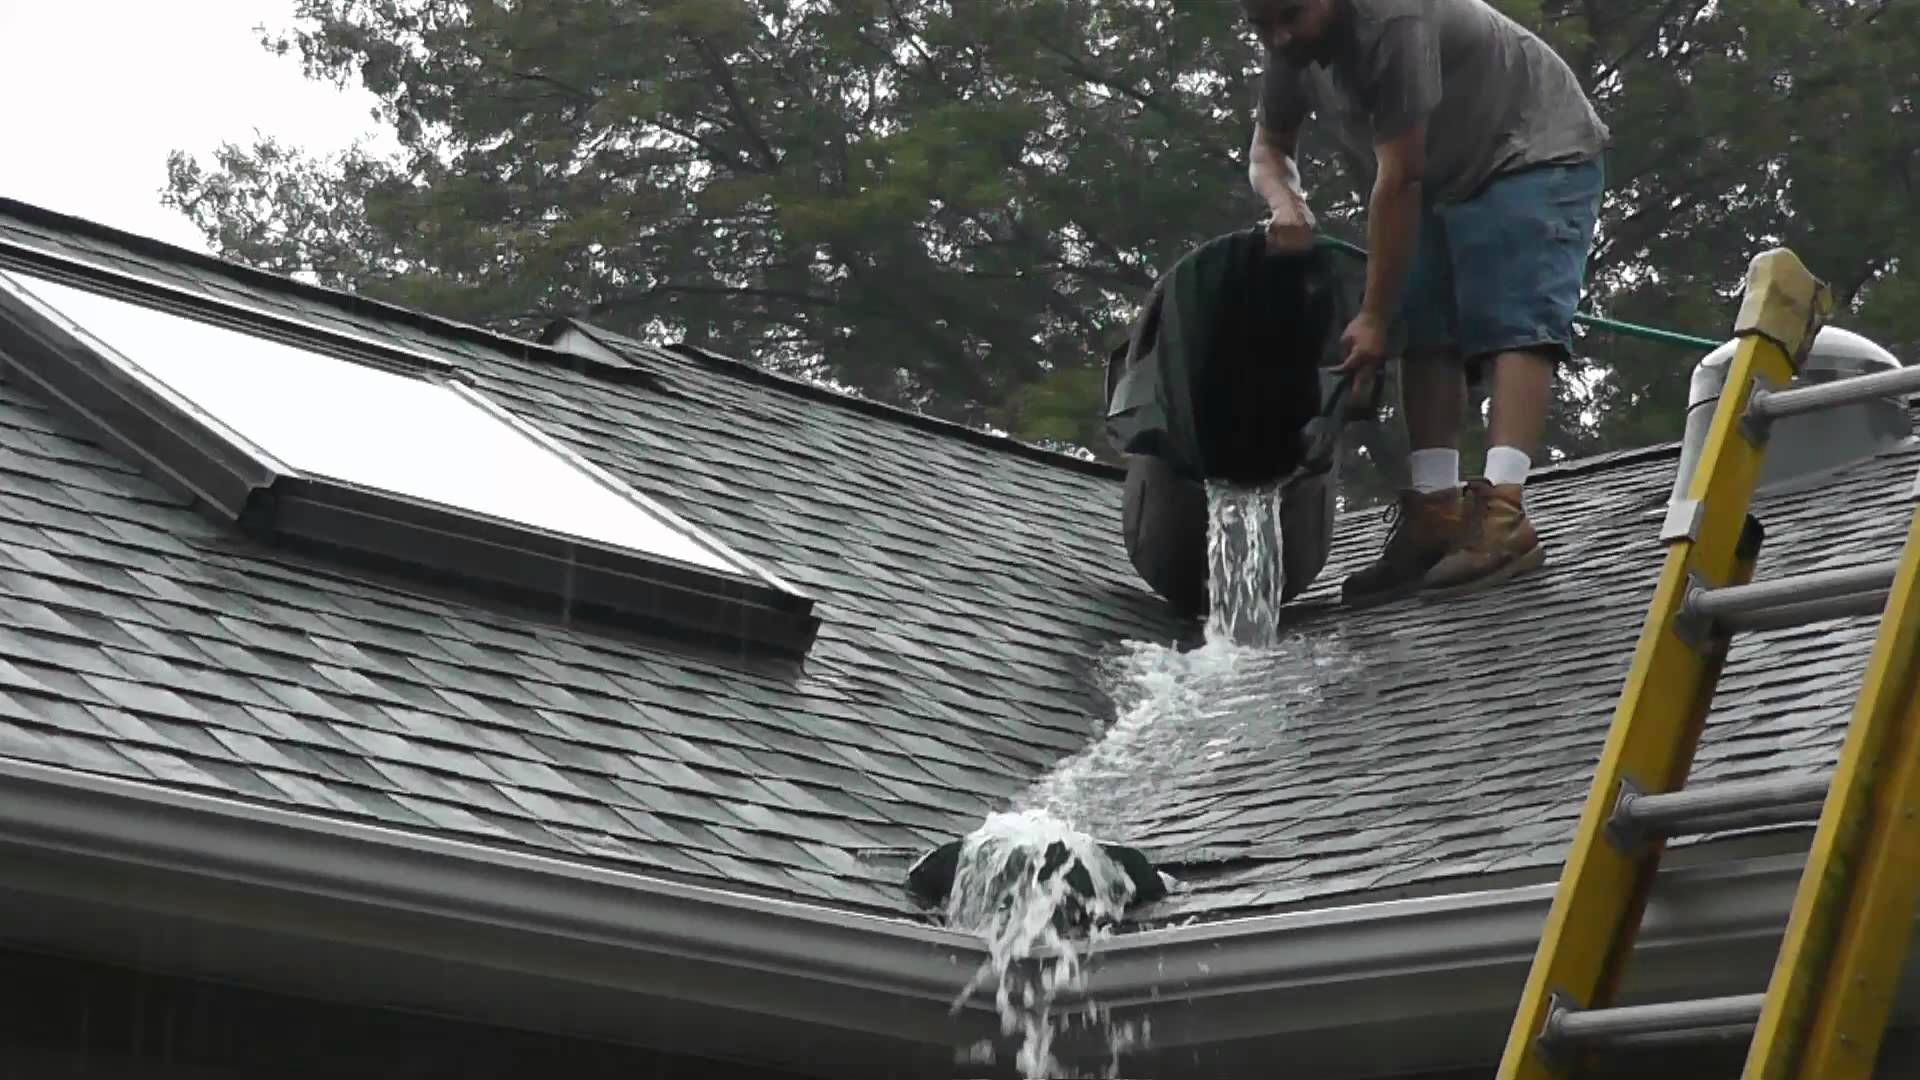 Roof Valley Rain Water Diverter Tests Ideas For Home